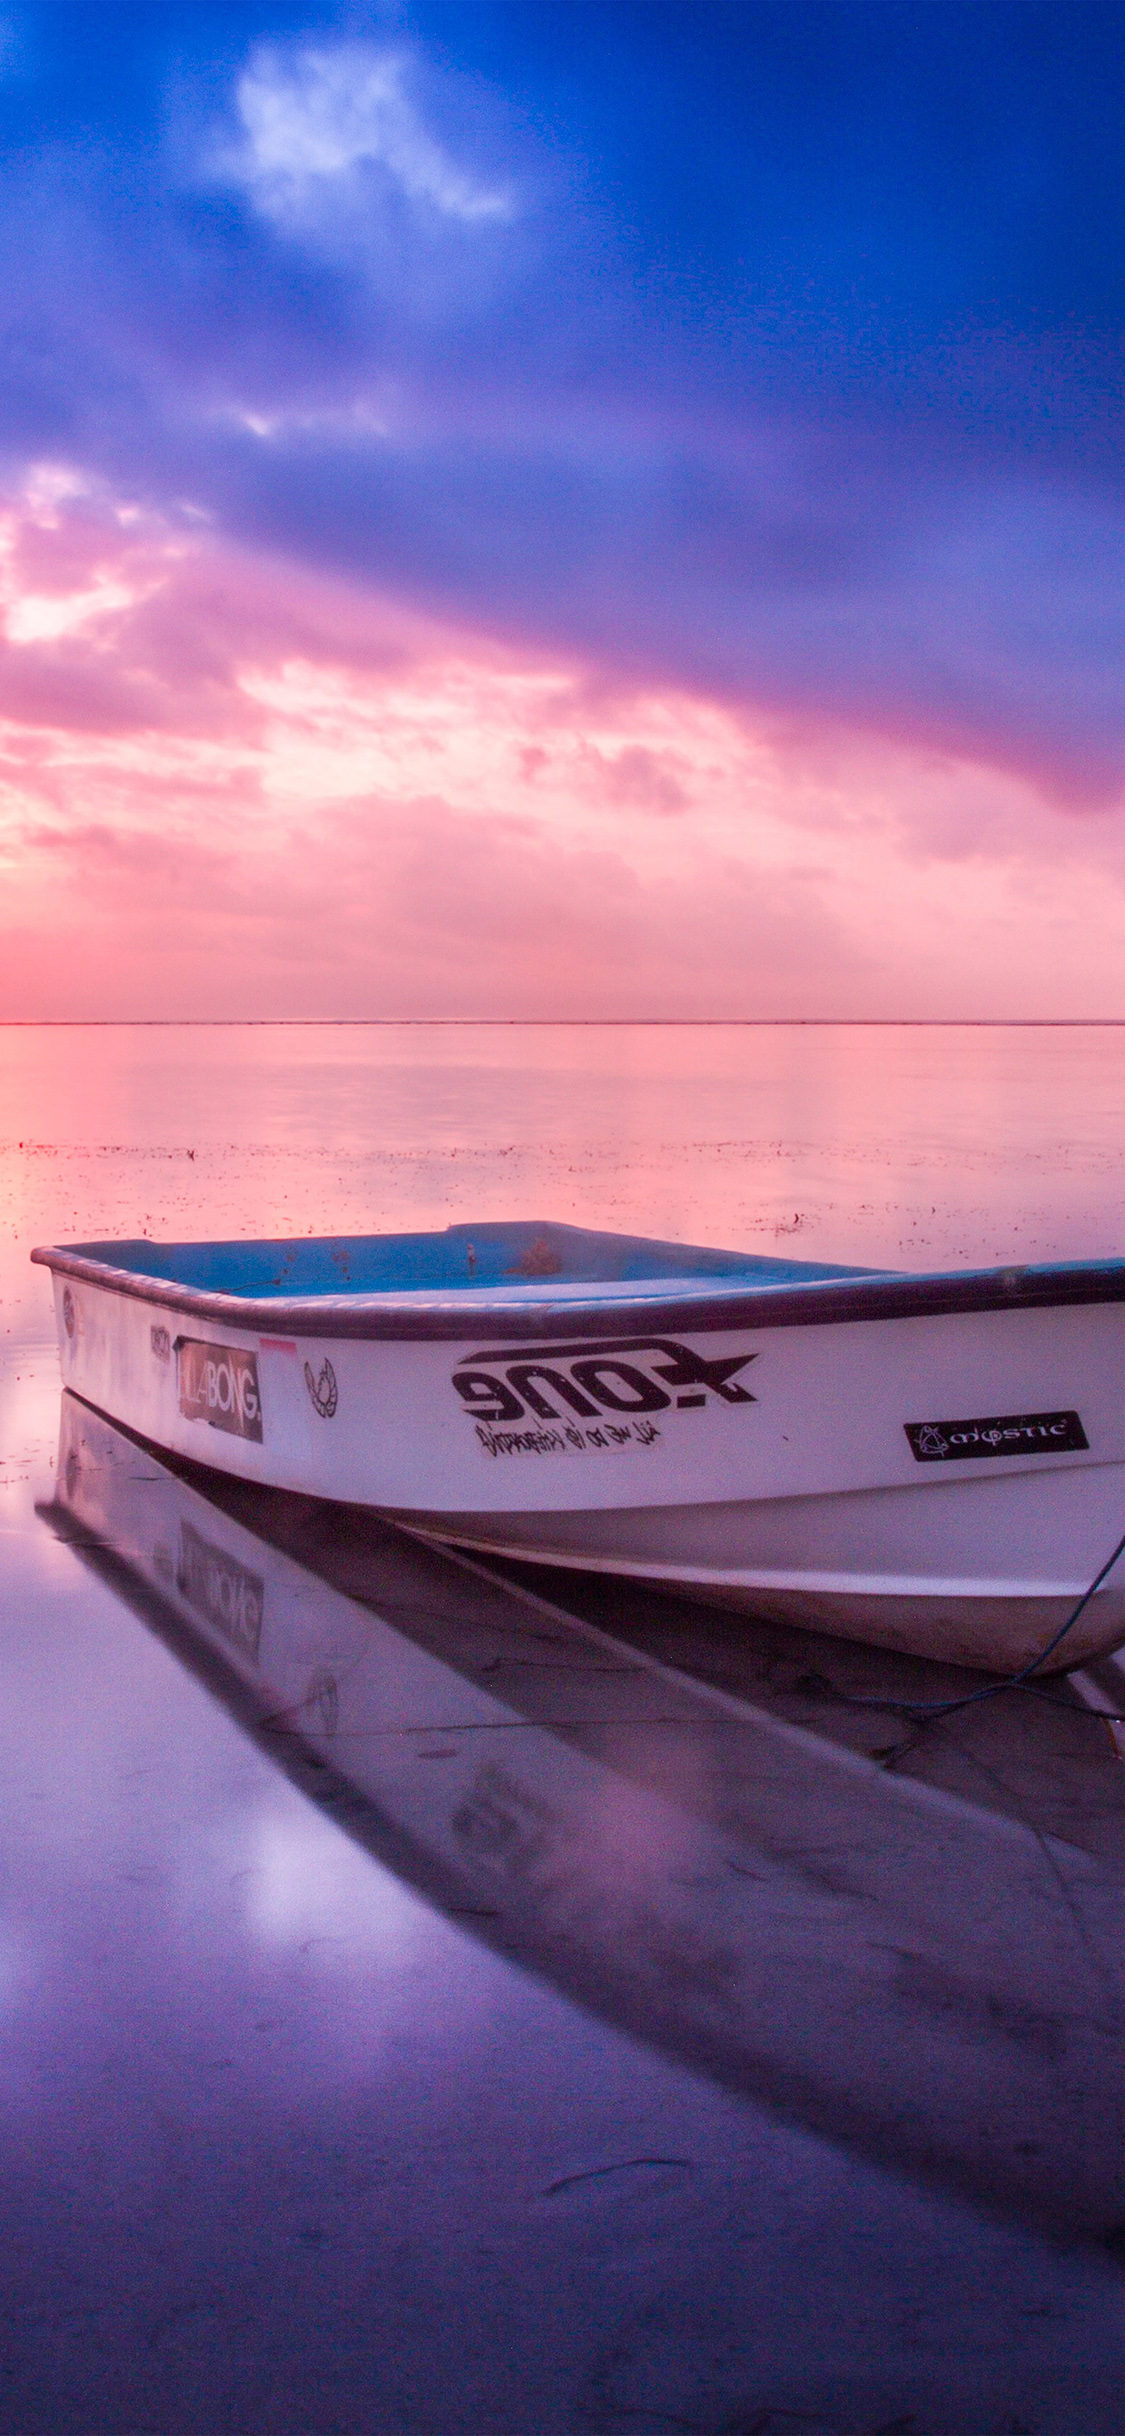 Iphonexpapers Com Iphone X Wallpaper Nl99 Nature Sea Beach Boat Alone Sunset Blue Pink